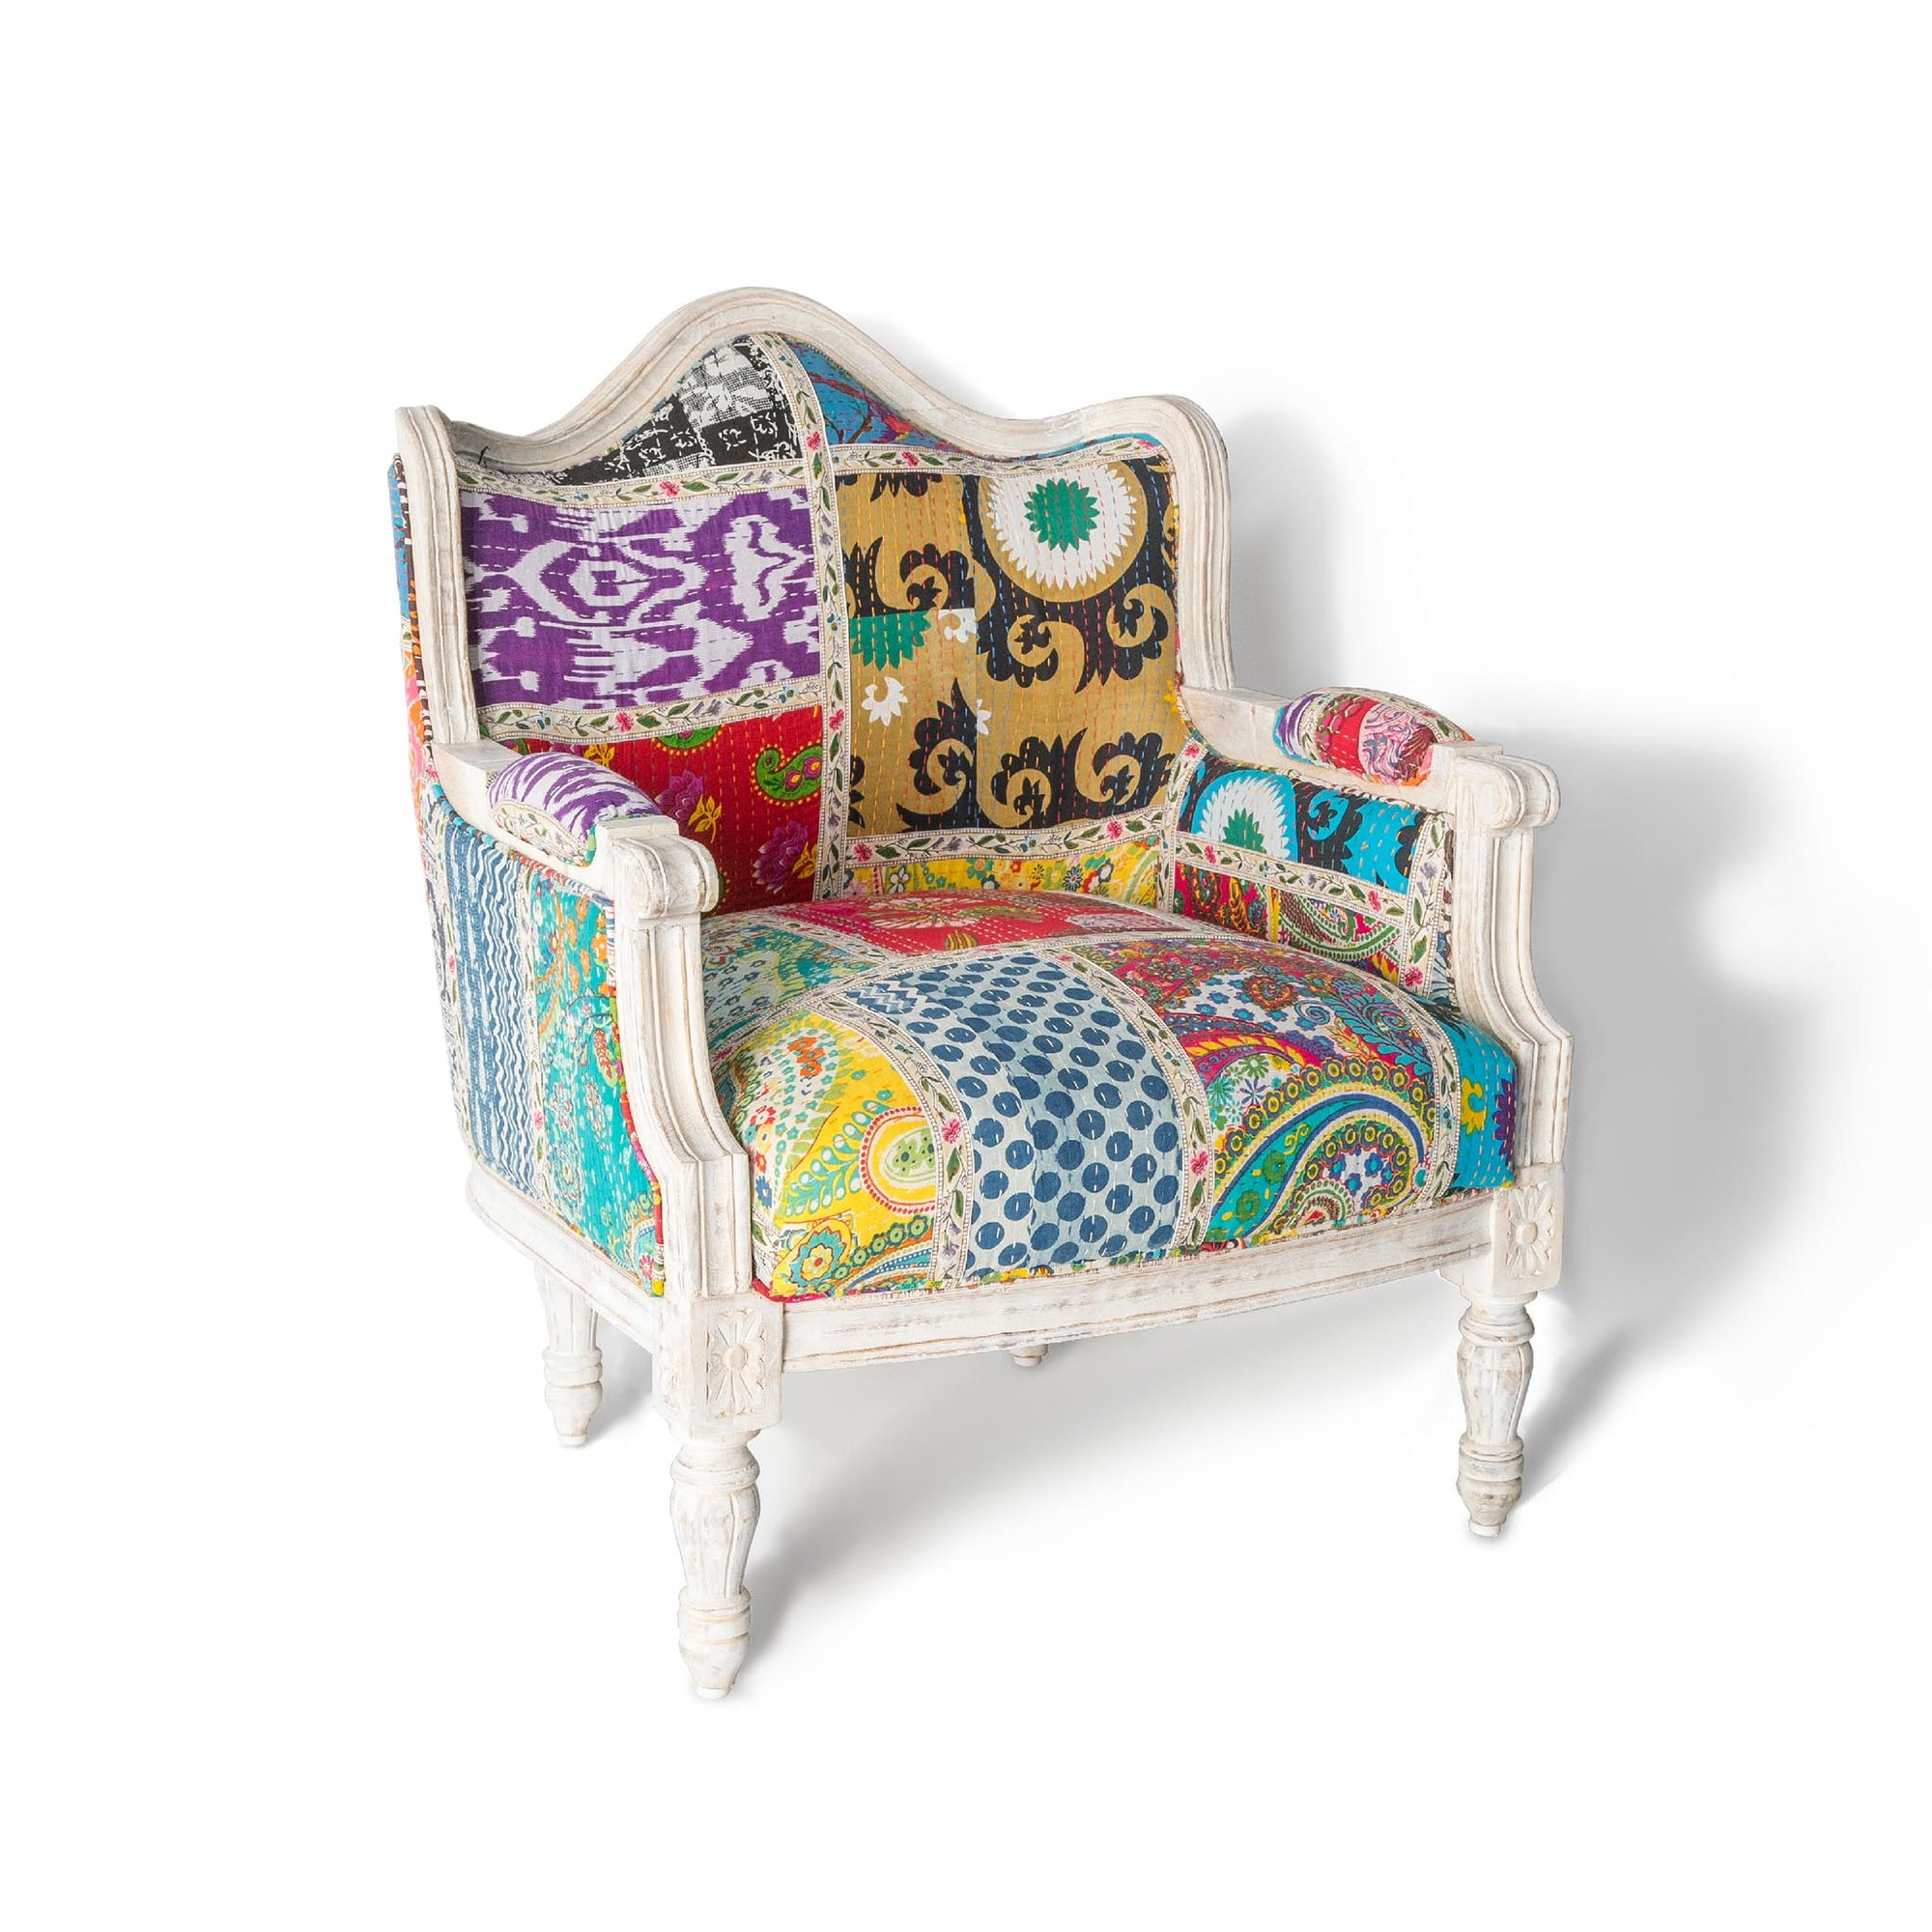 Kantha white framed chair with a vibrant grid patchwork patterned fabric by Roseland Furniture